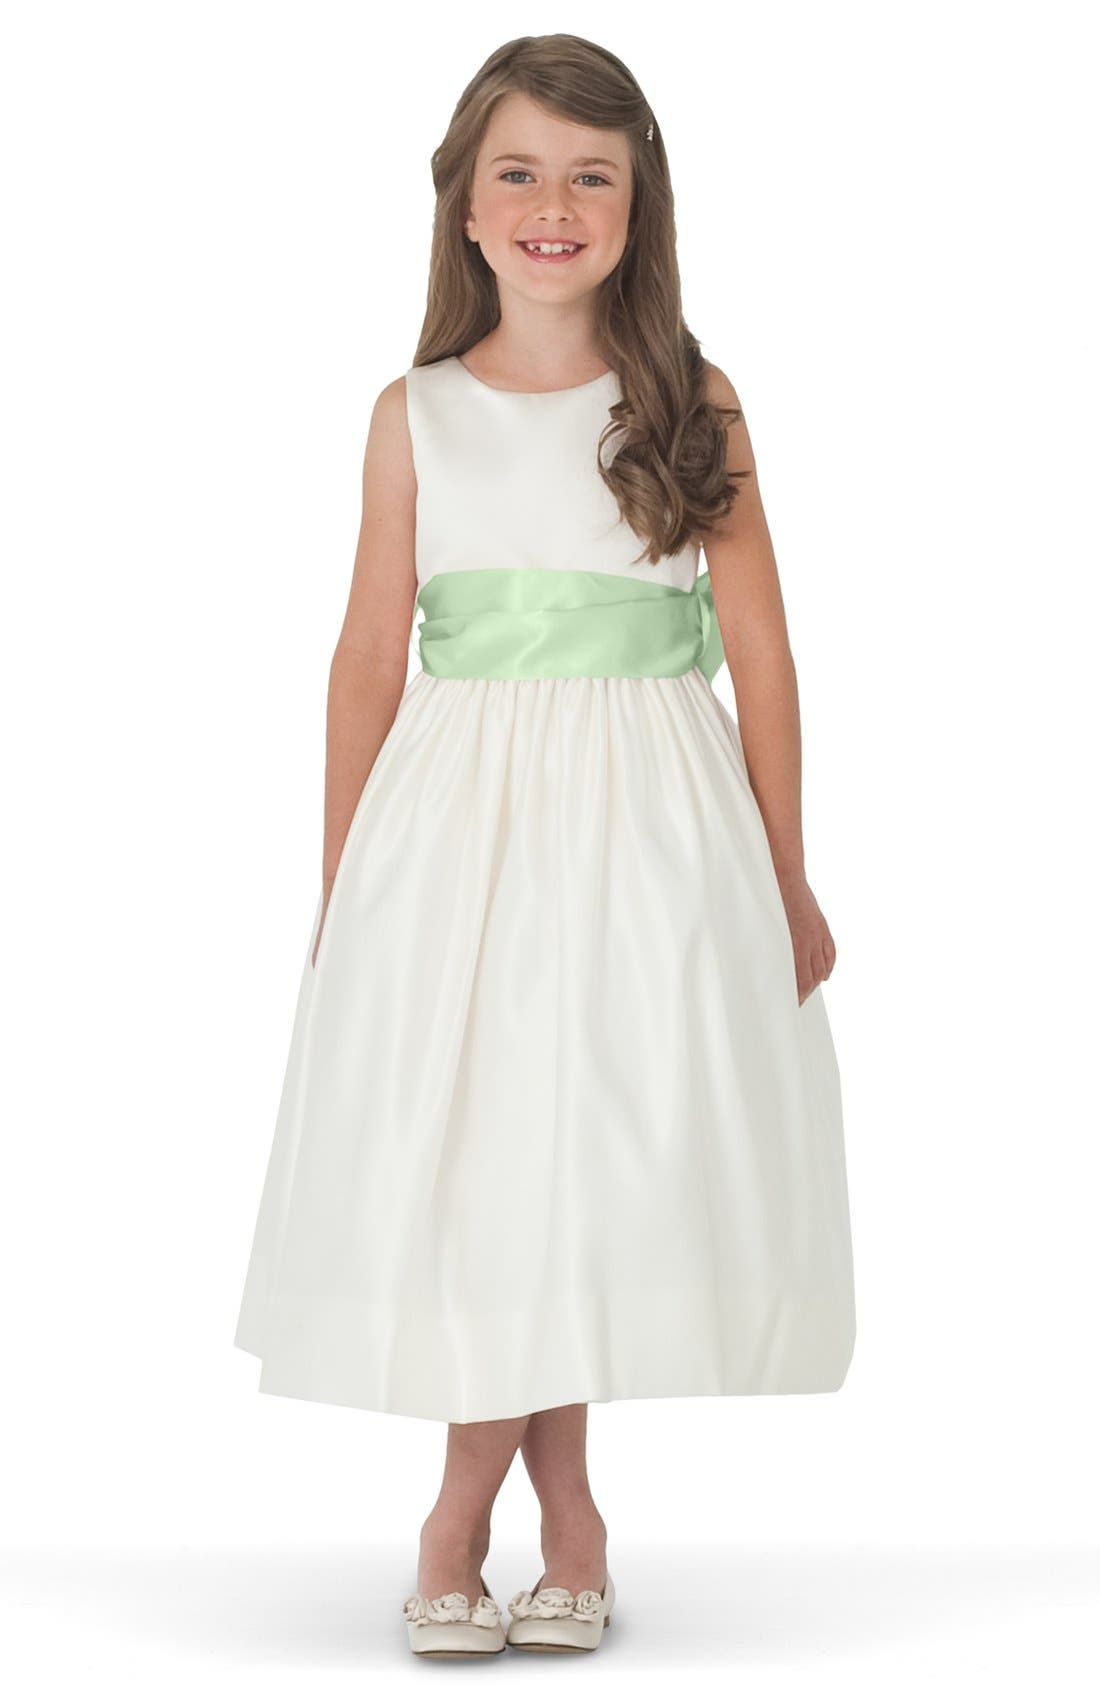 Alternate Image 1 Selected - Us Angels Sleeveless Satin Dress with Contrast Sash (Toddler Girls, Little Girls & Big Girls)